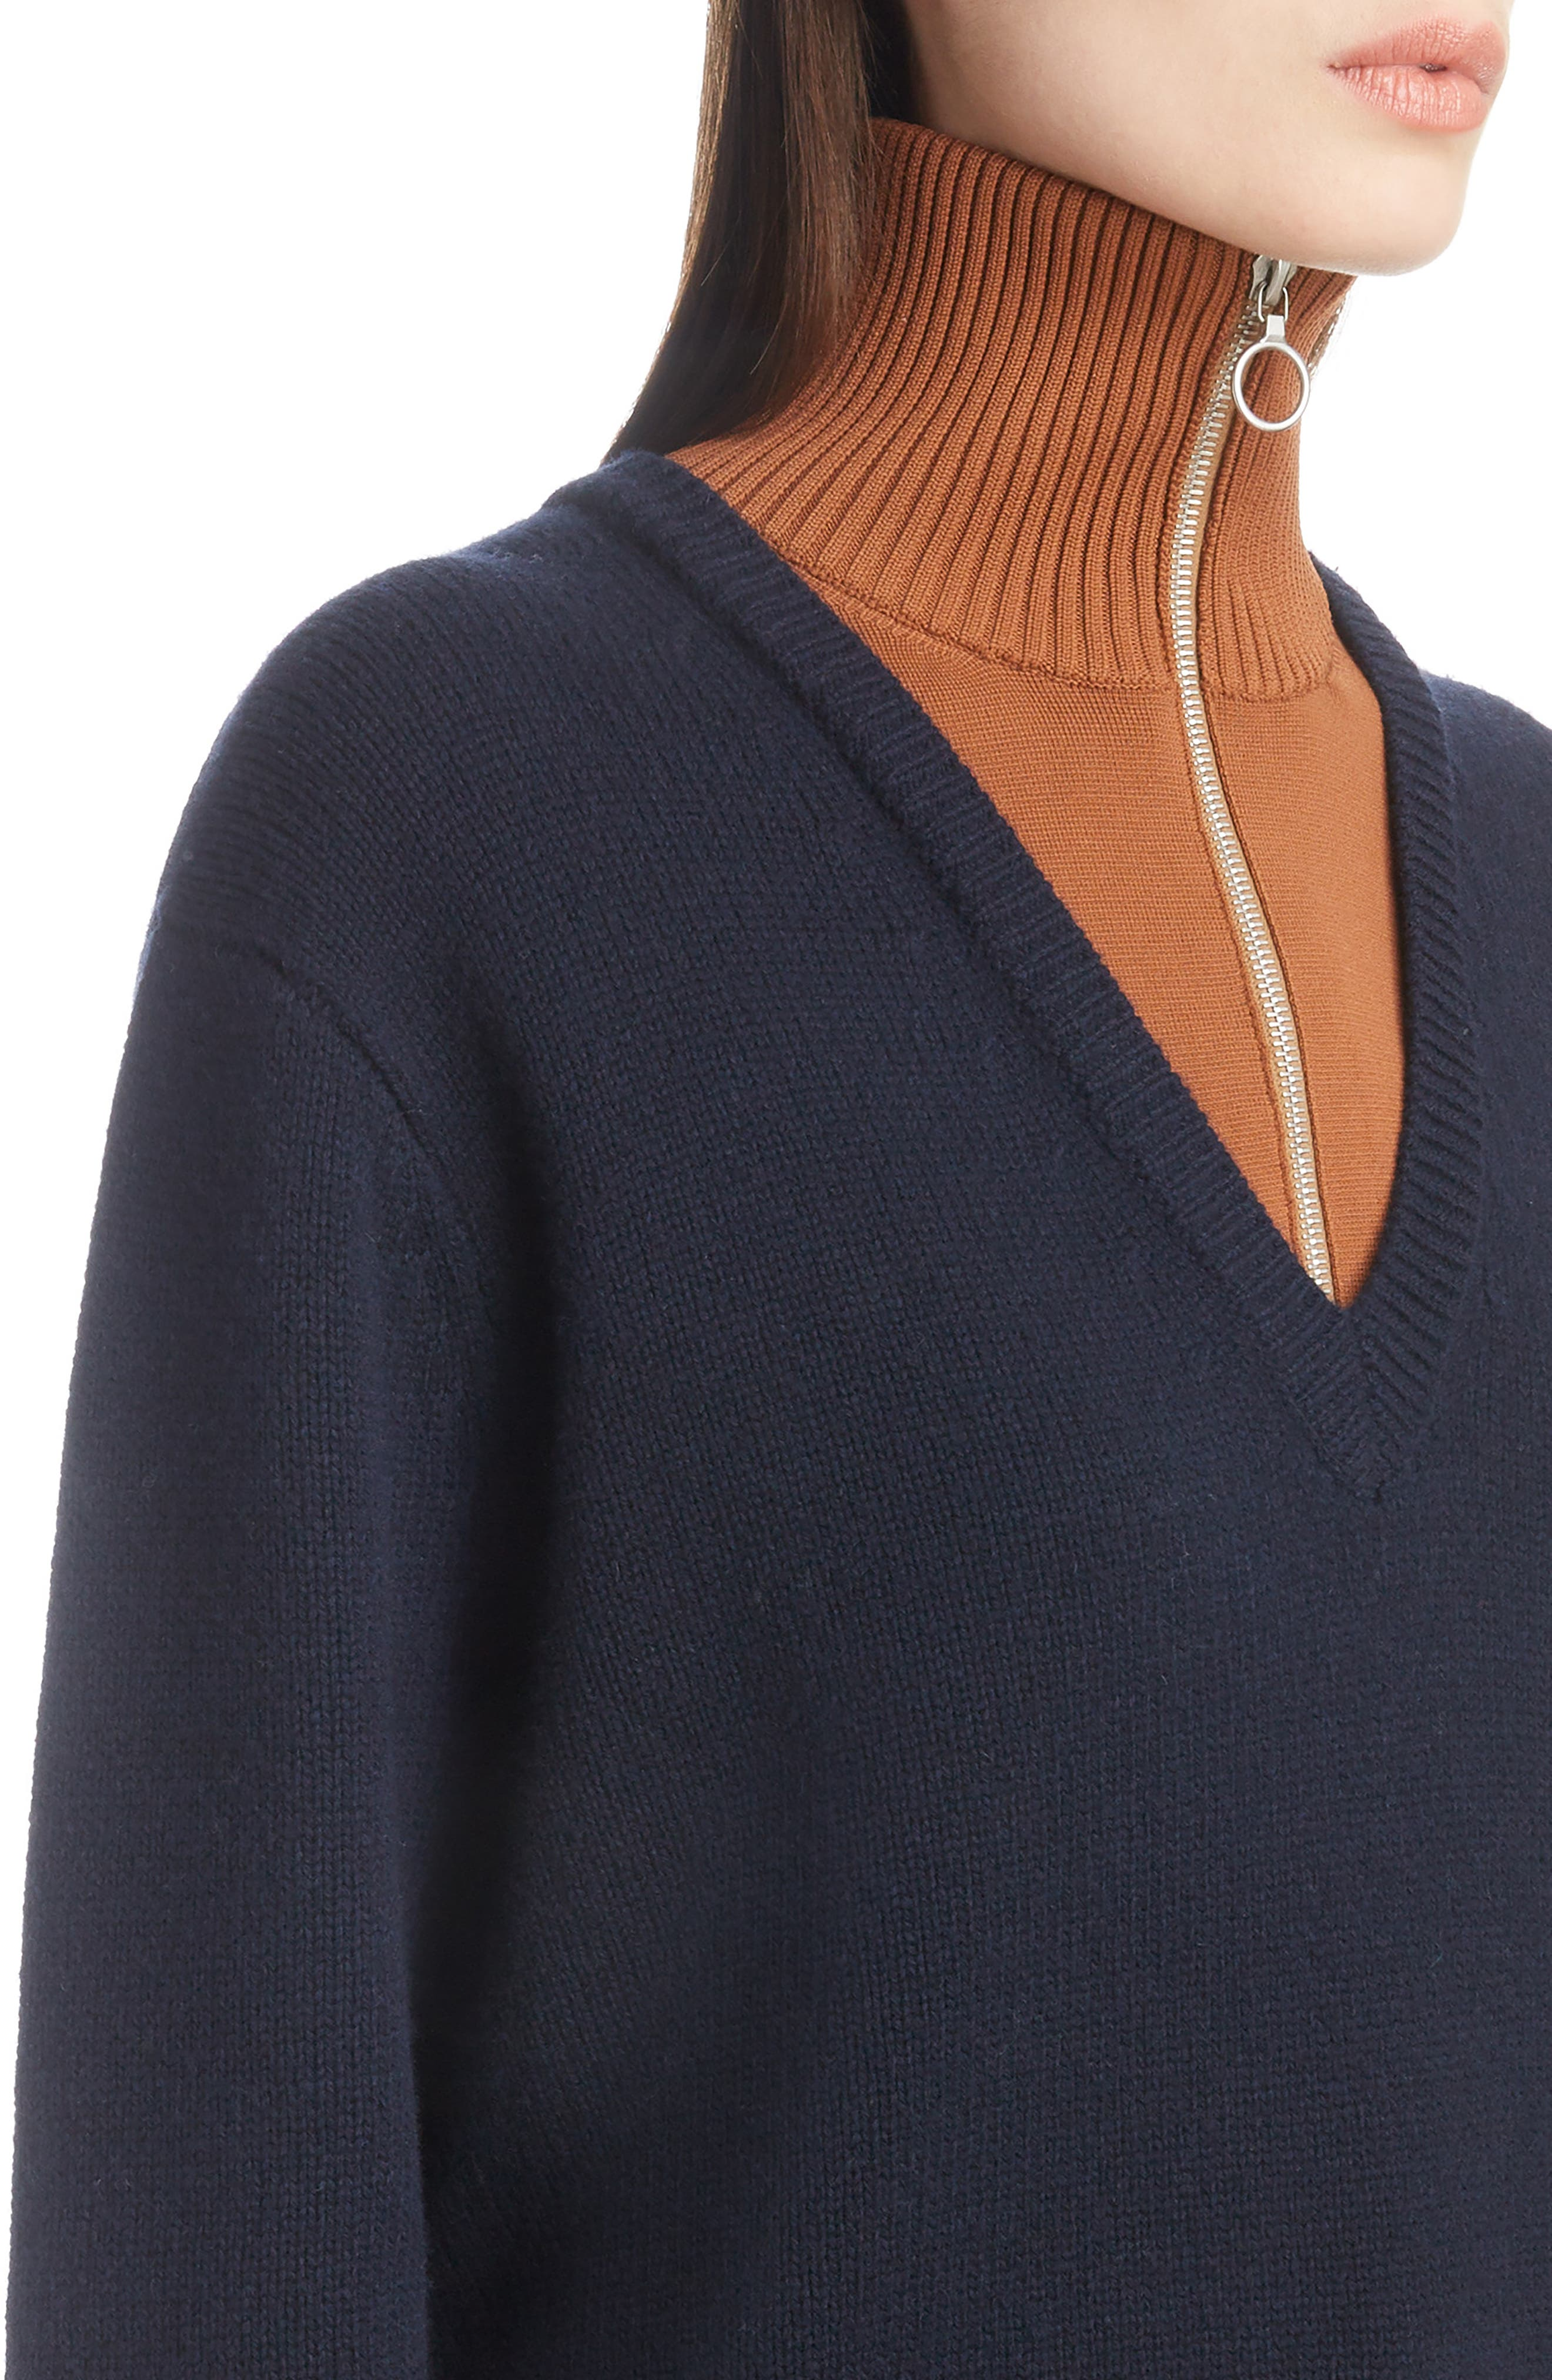 Inset Stretch Wool Sweater,                             Alternate thumbnail 4, color,                             NAVY